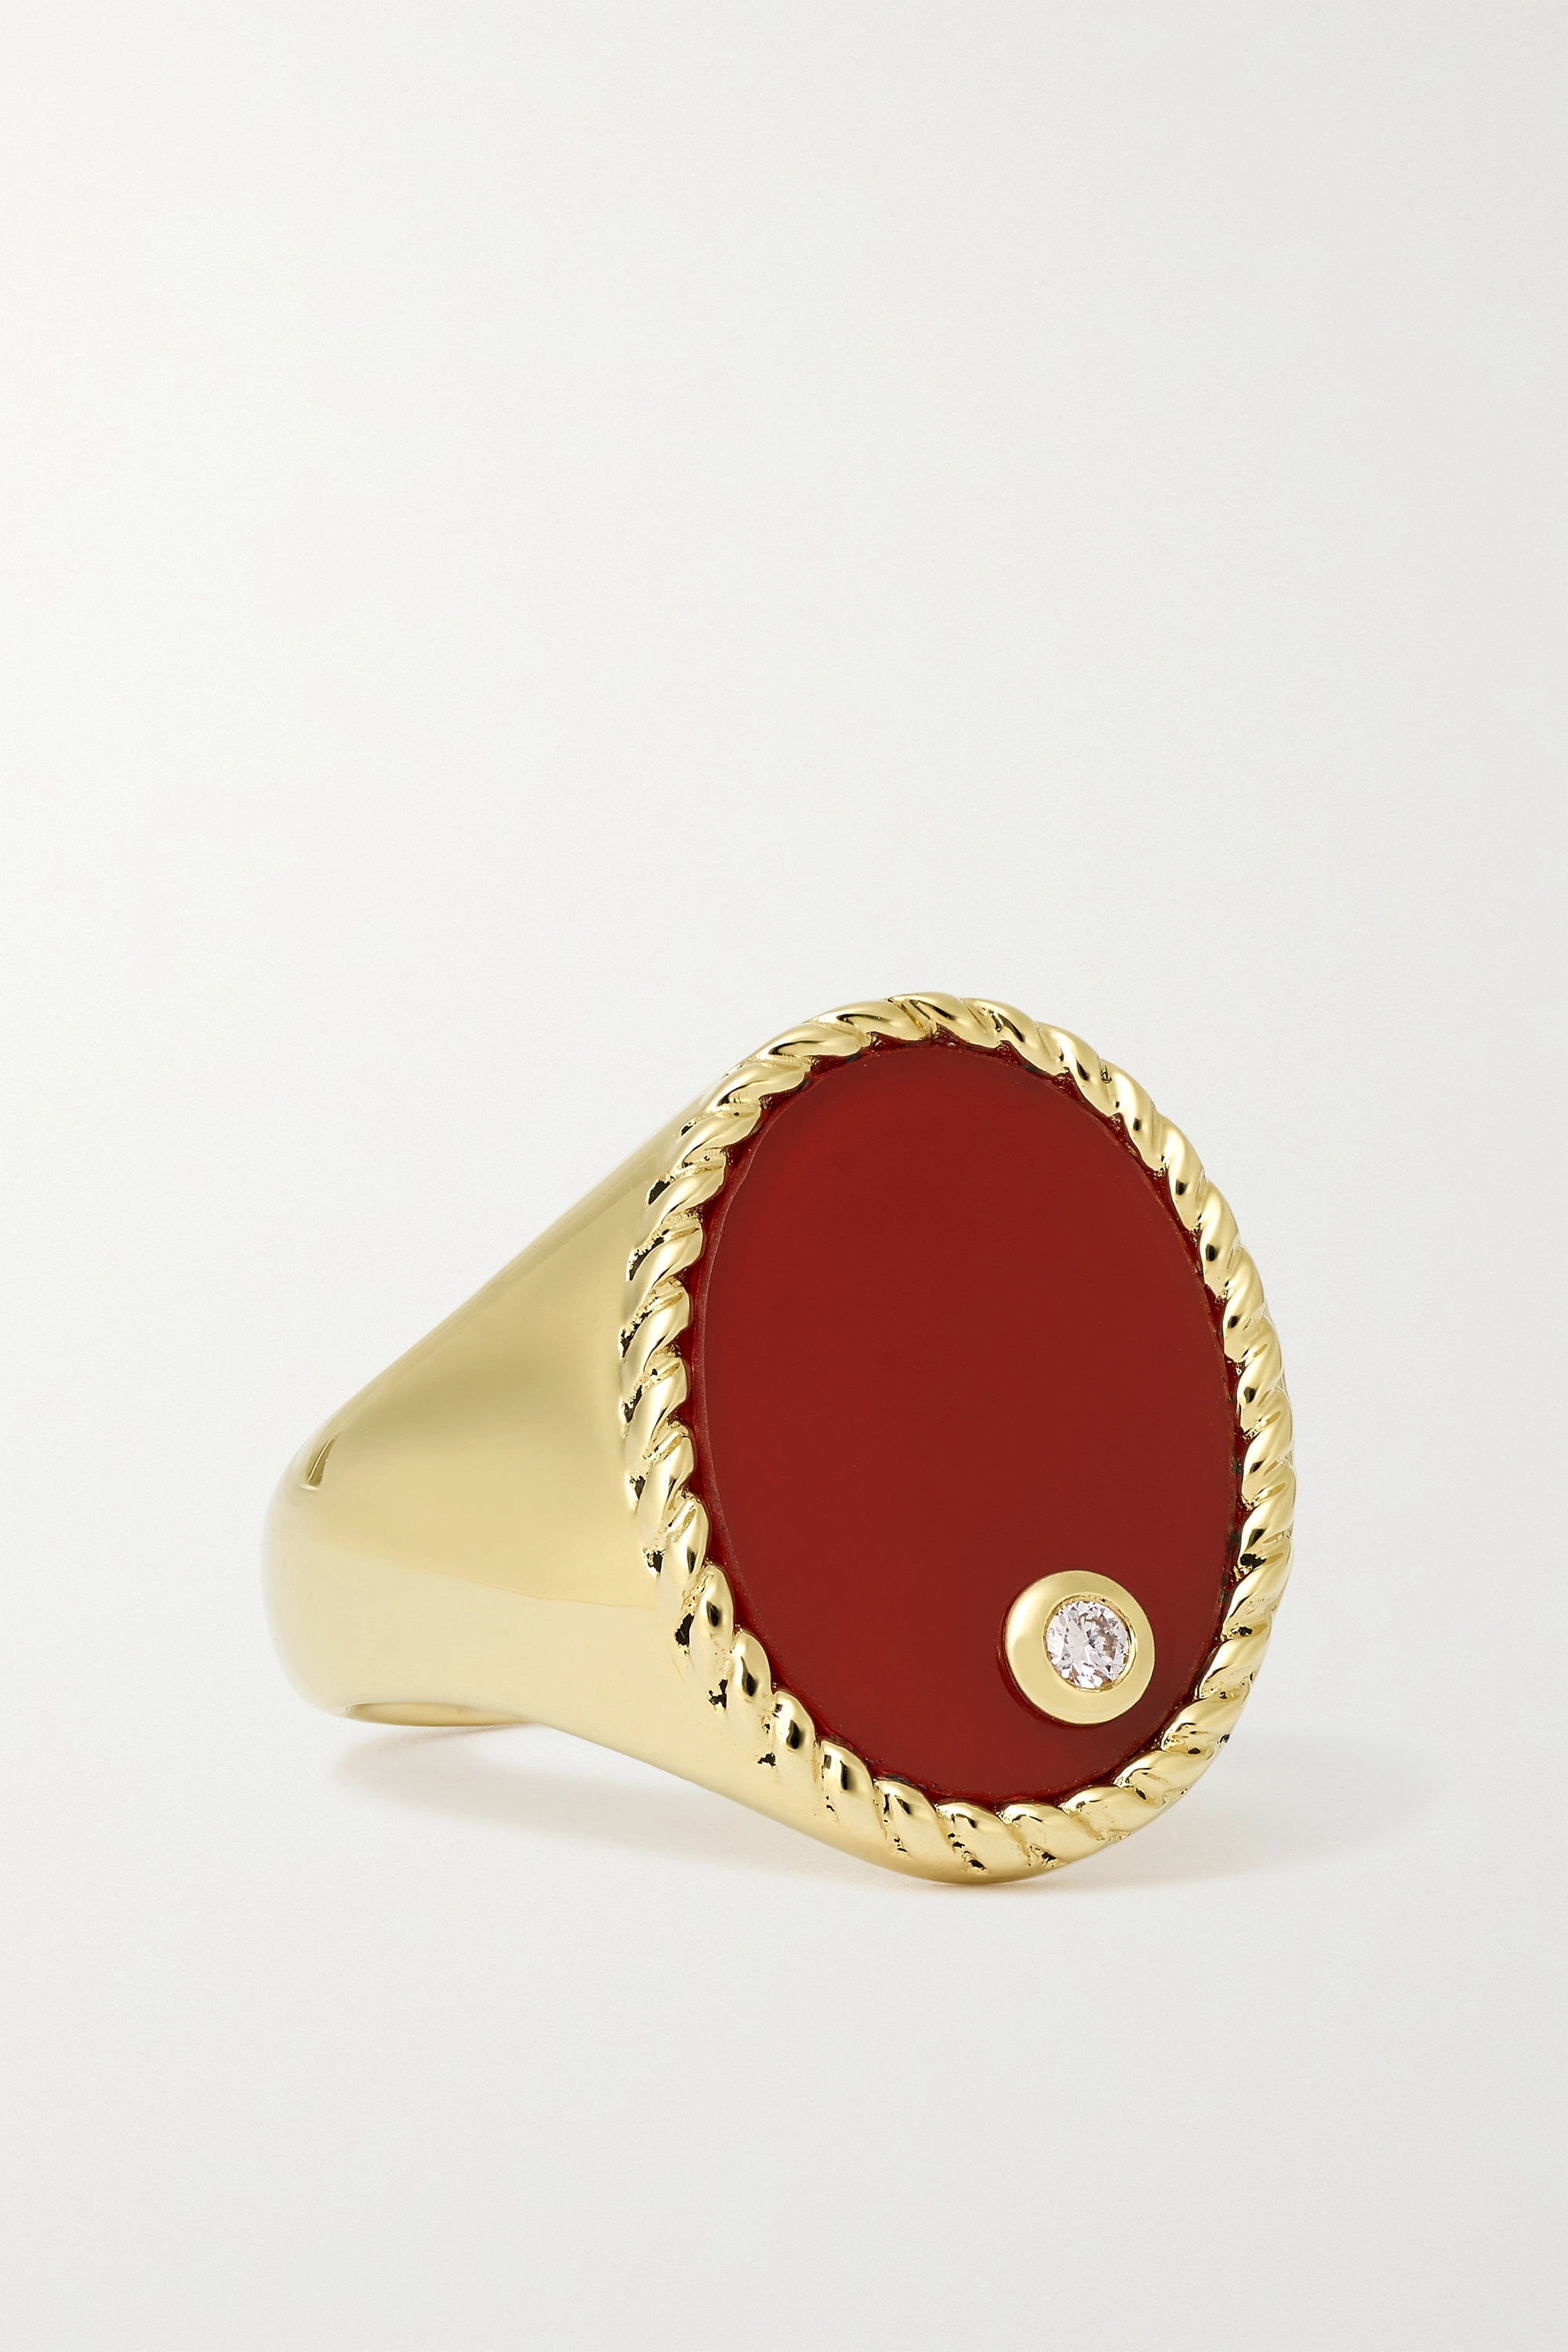 YVONNE LÉON 9-karat gold, agate and diamond ring